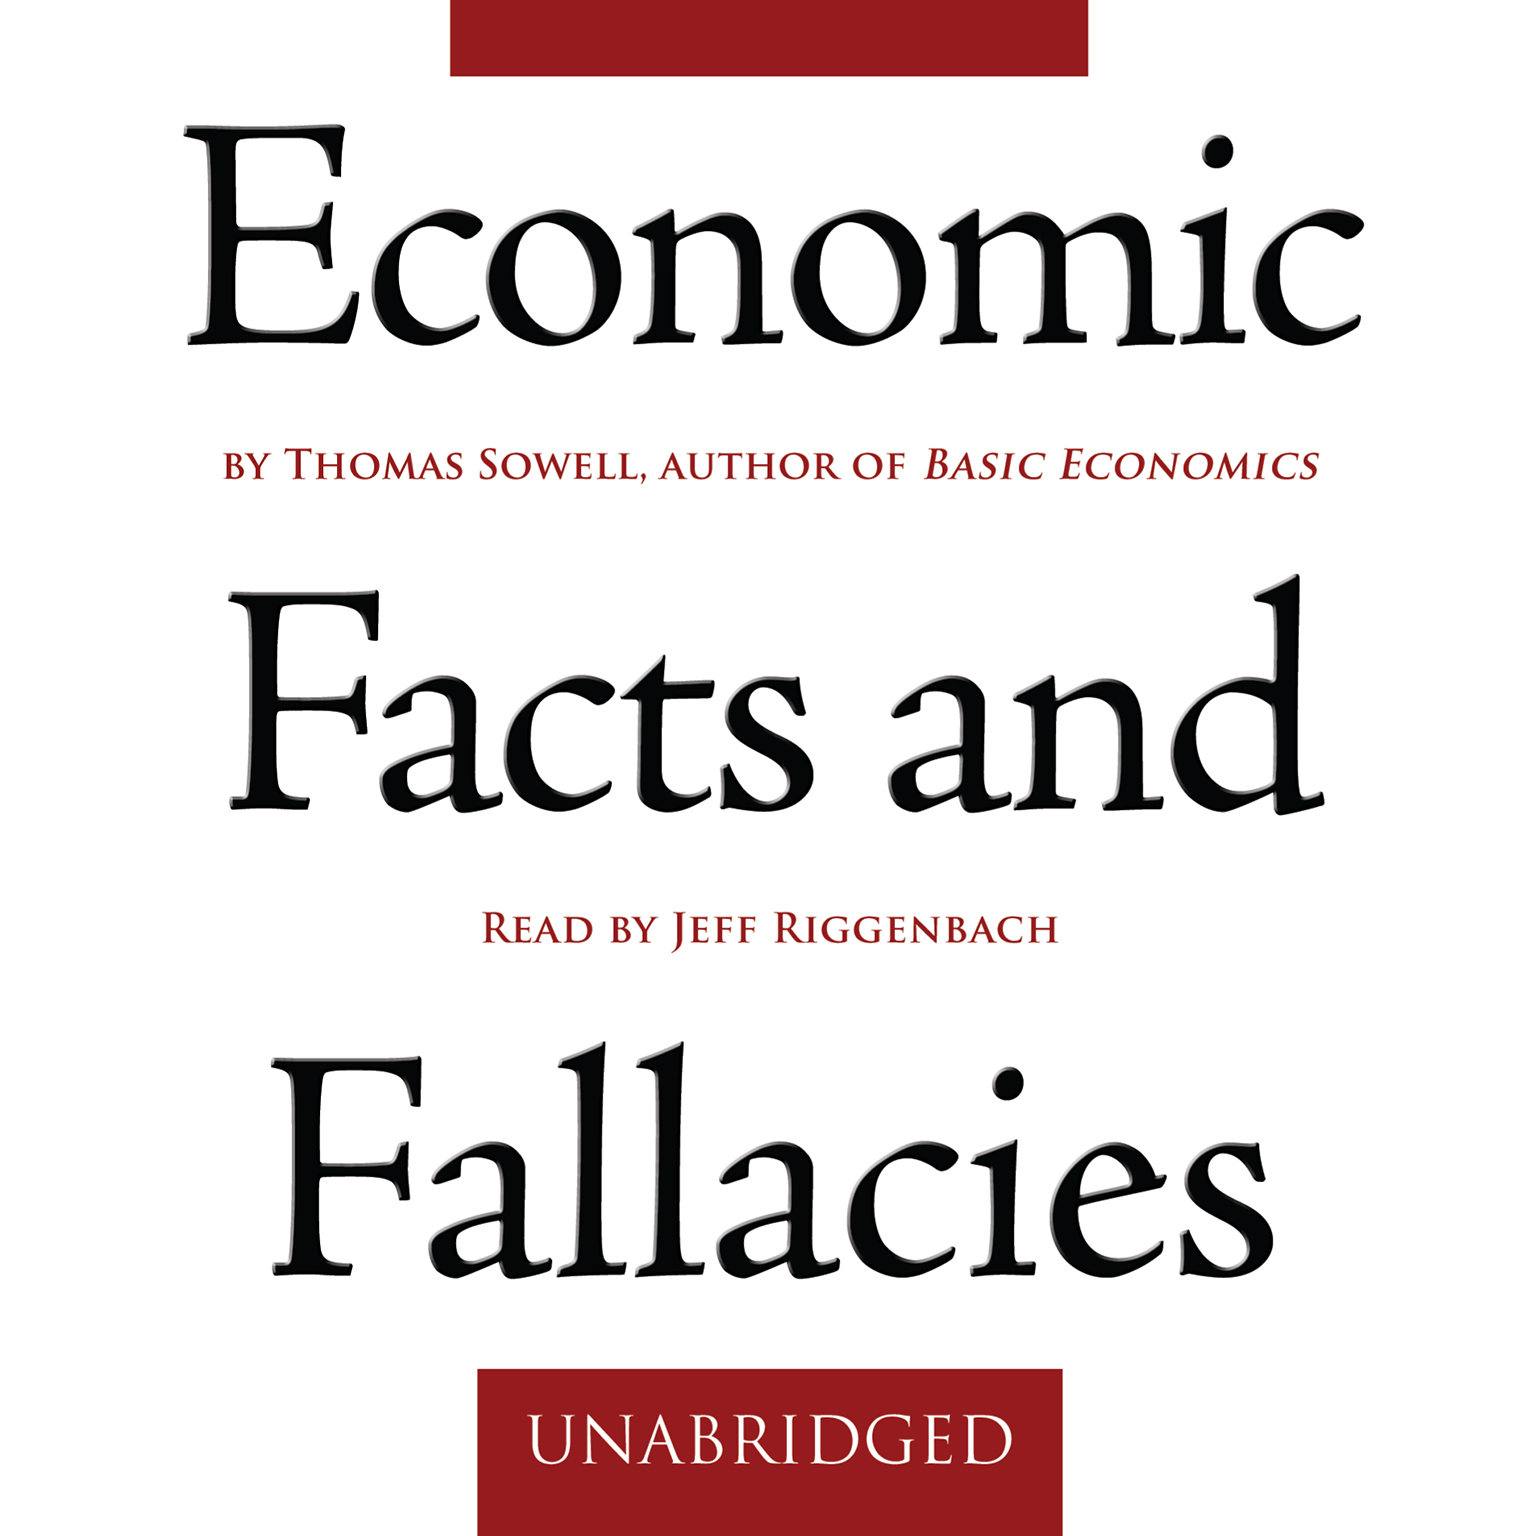 Printable Economic Facts and Fallacies Audiobook Cover Art